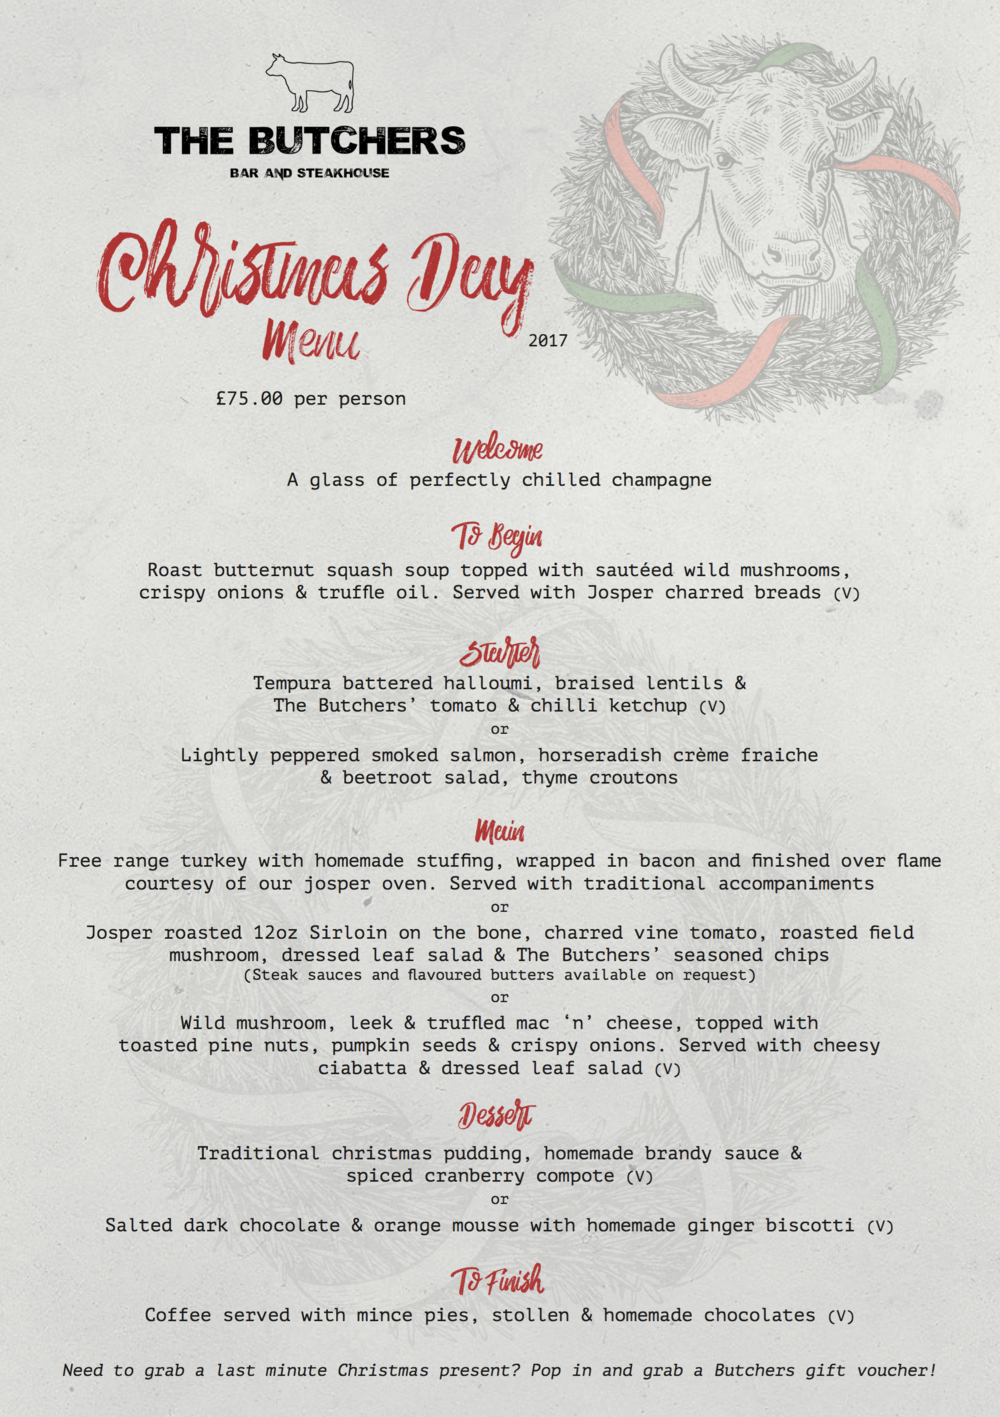 CLICK HERE TO DOWNLOAD OUR FESTIVE MENU AND BOOKING FORM